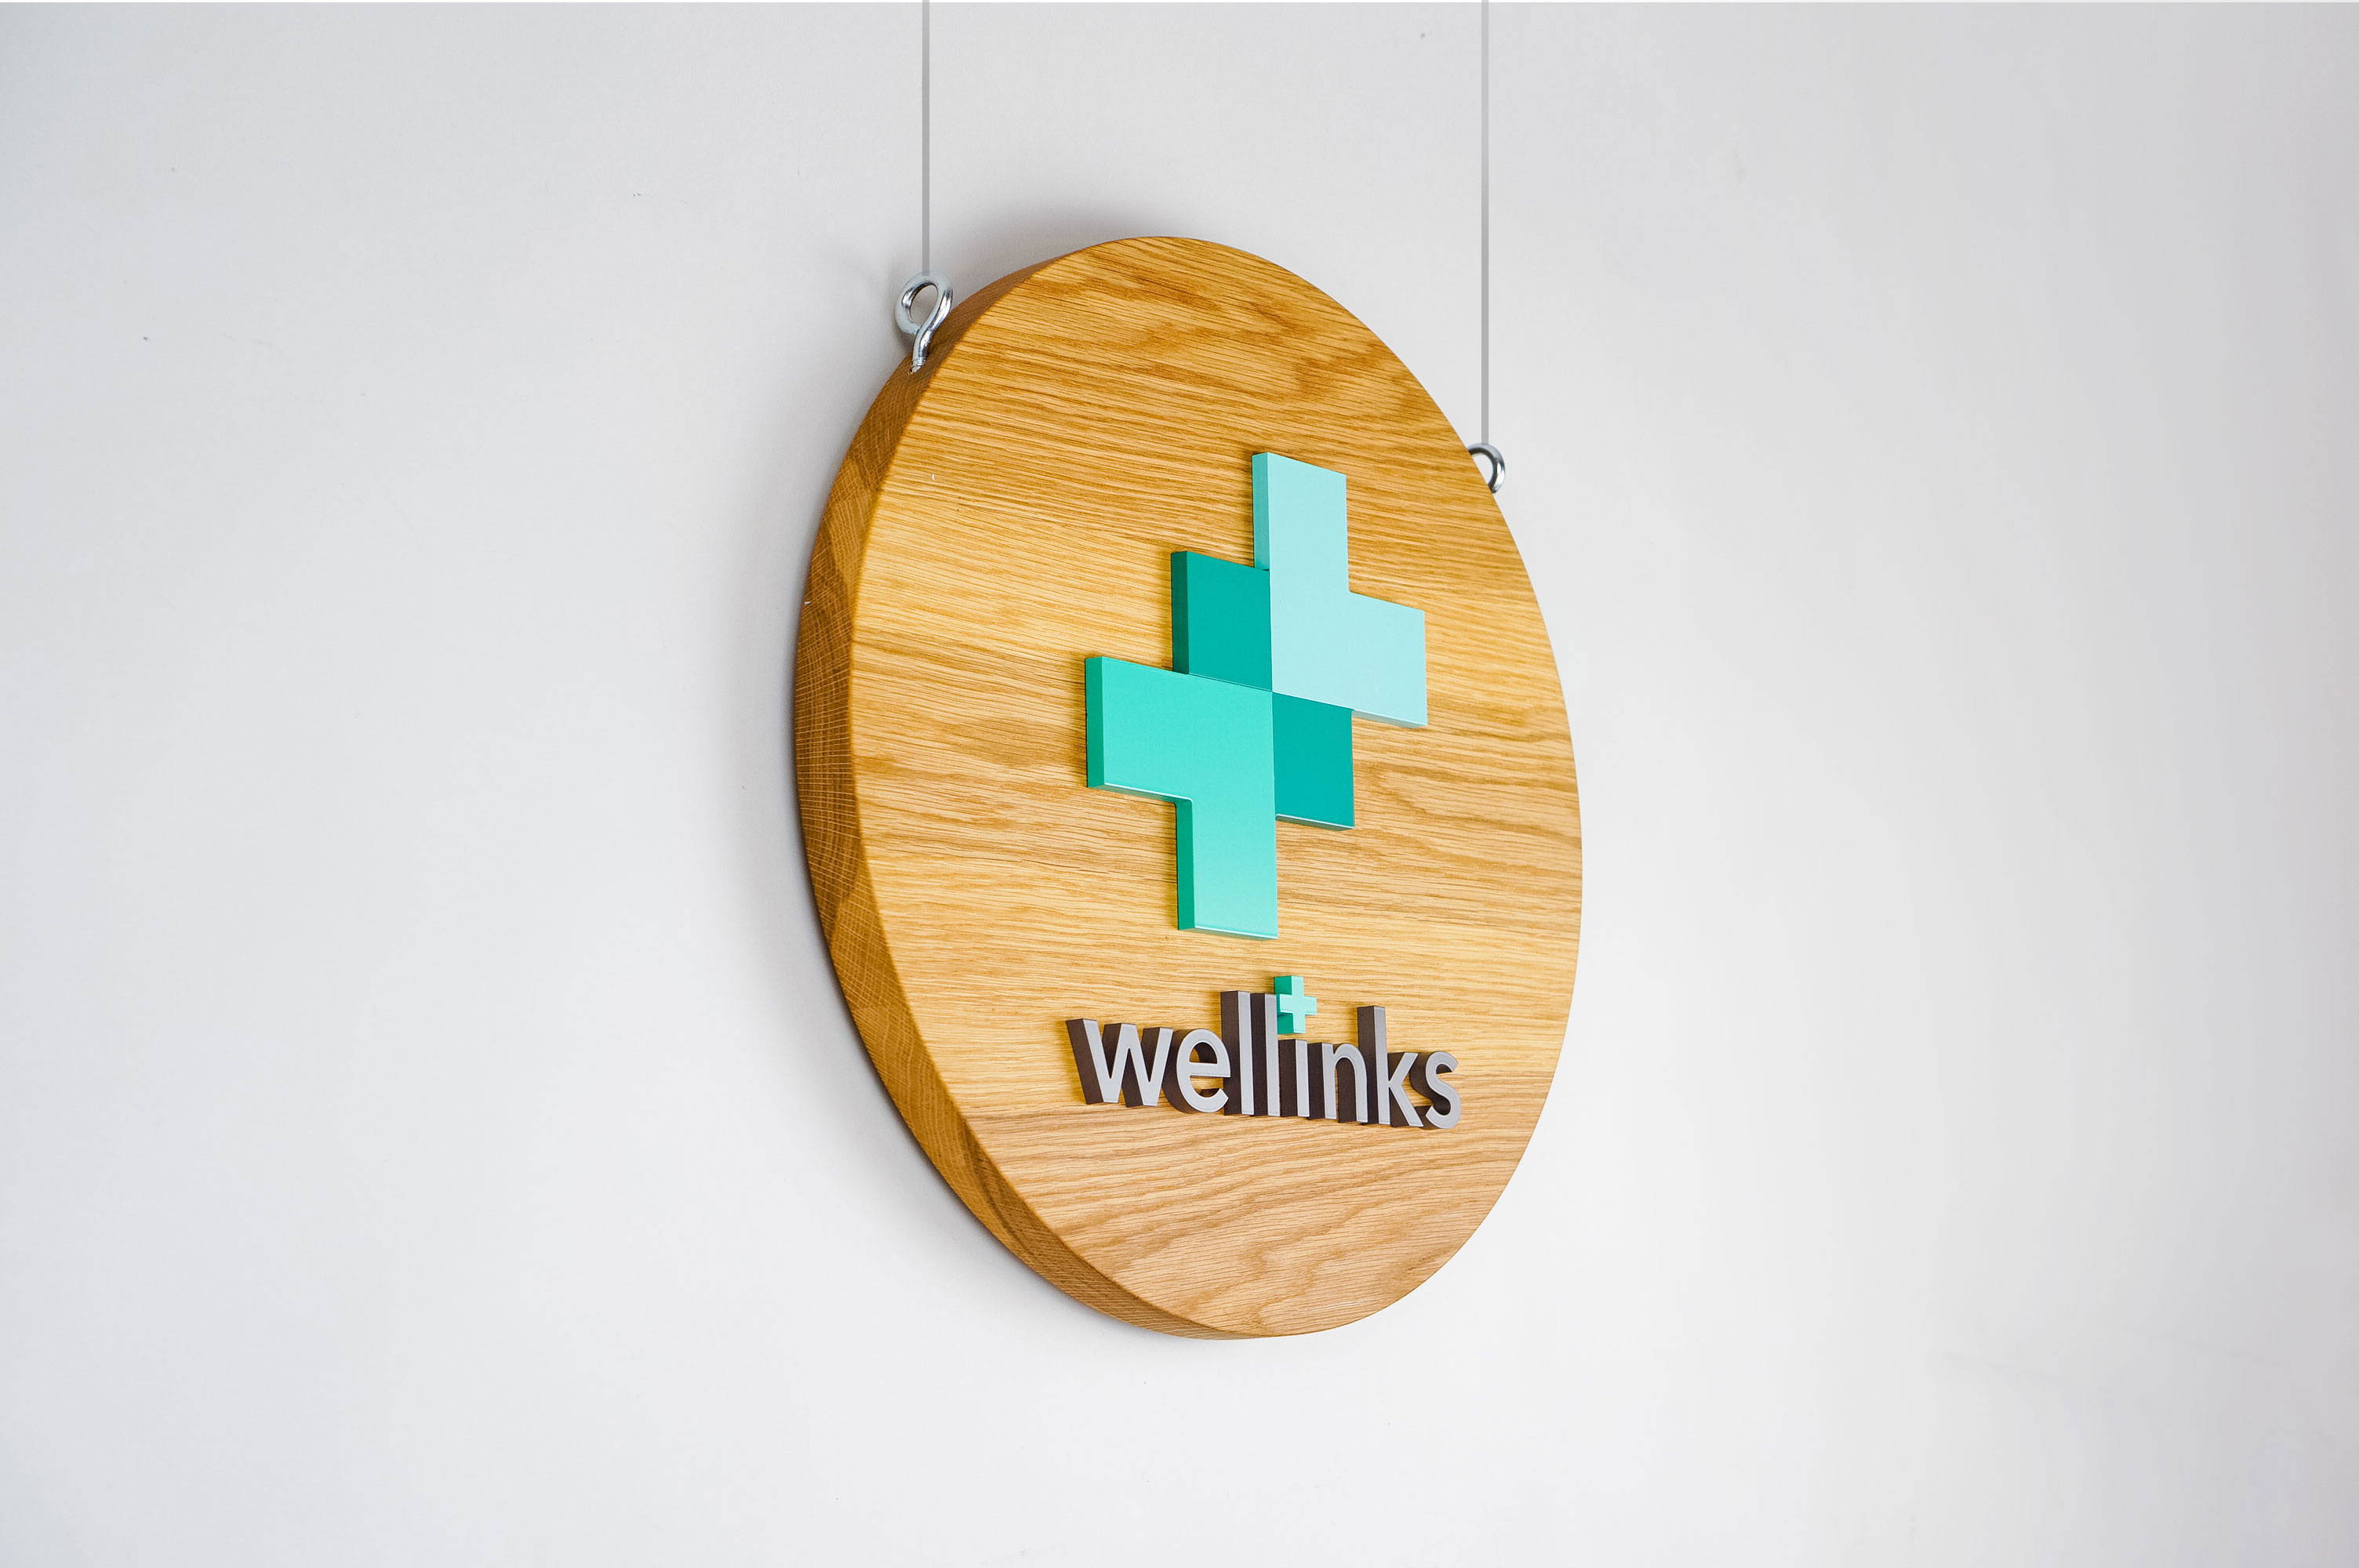 Wood hanging blade sign with green and grey logo for Wellinks, a wearable health technology company.